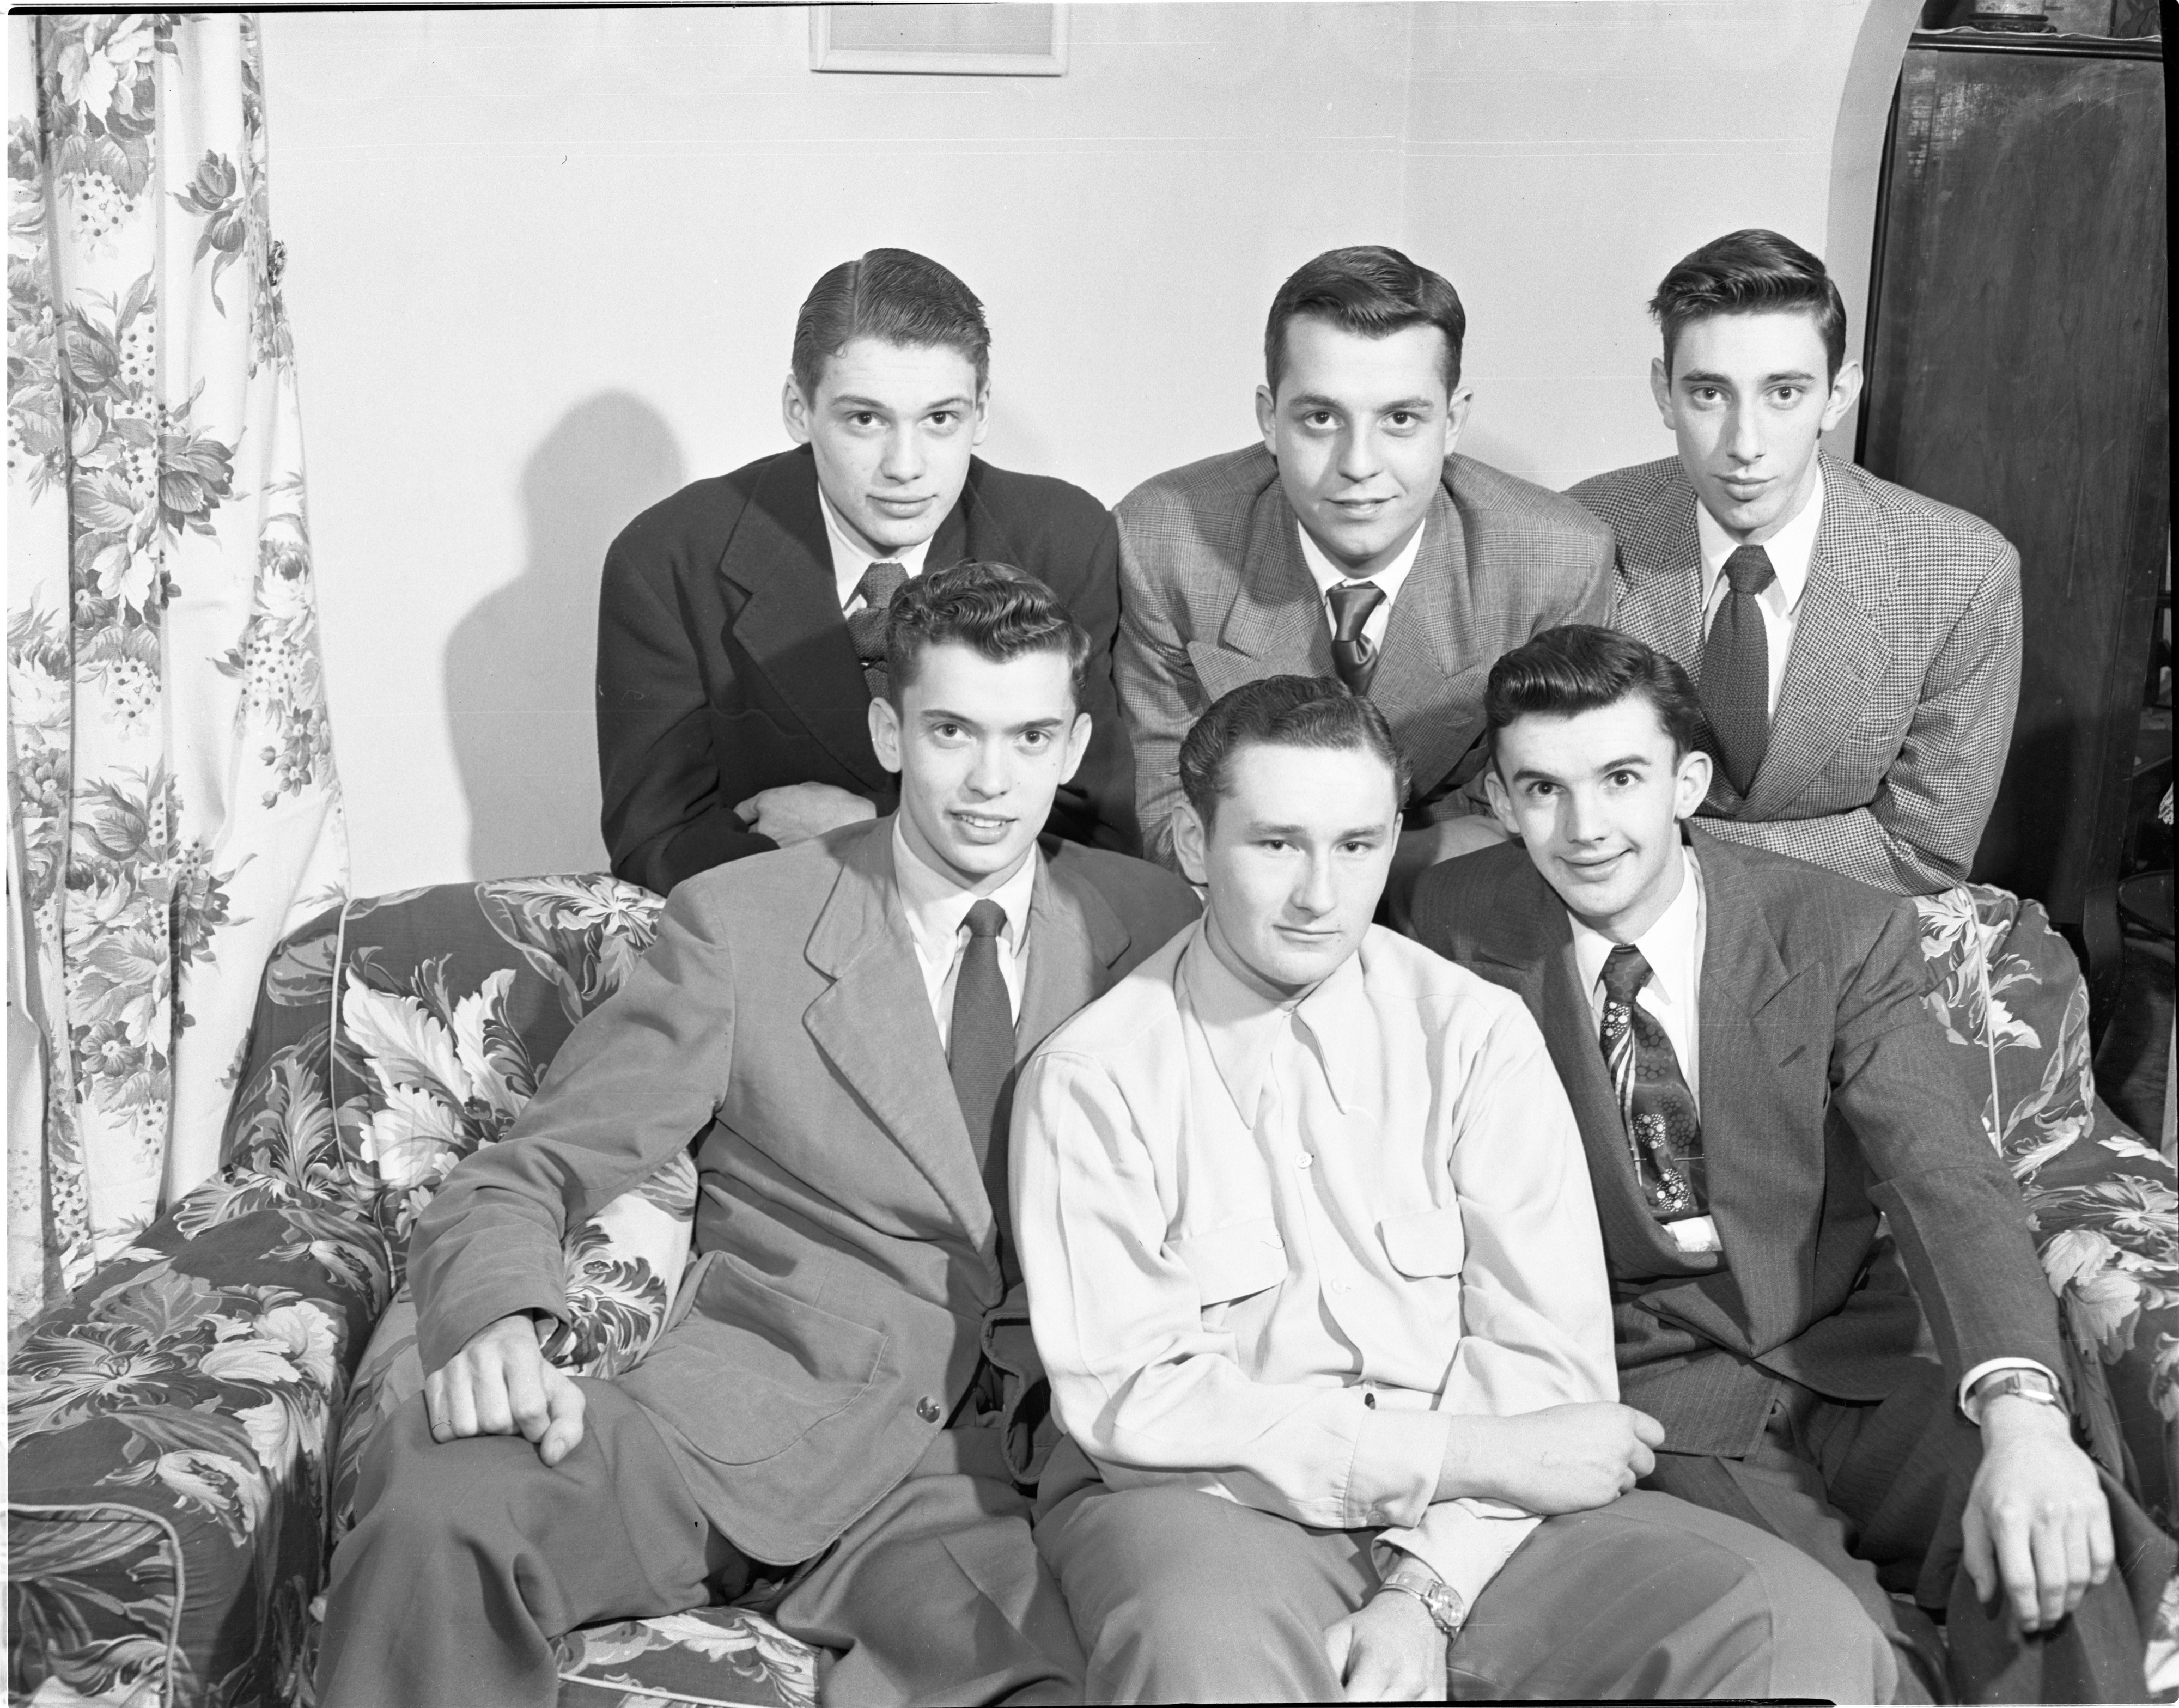 Six Friends Enlisted Together In U. S. Air Force, January 1951 image